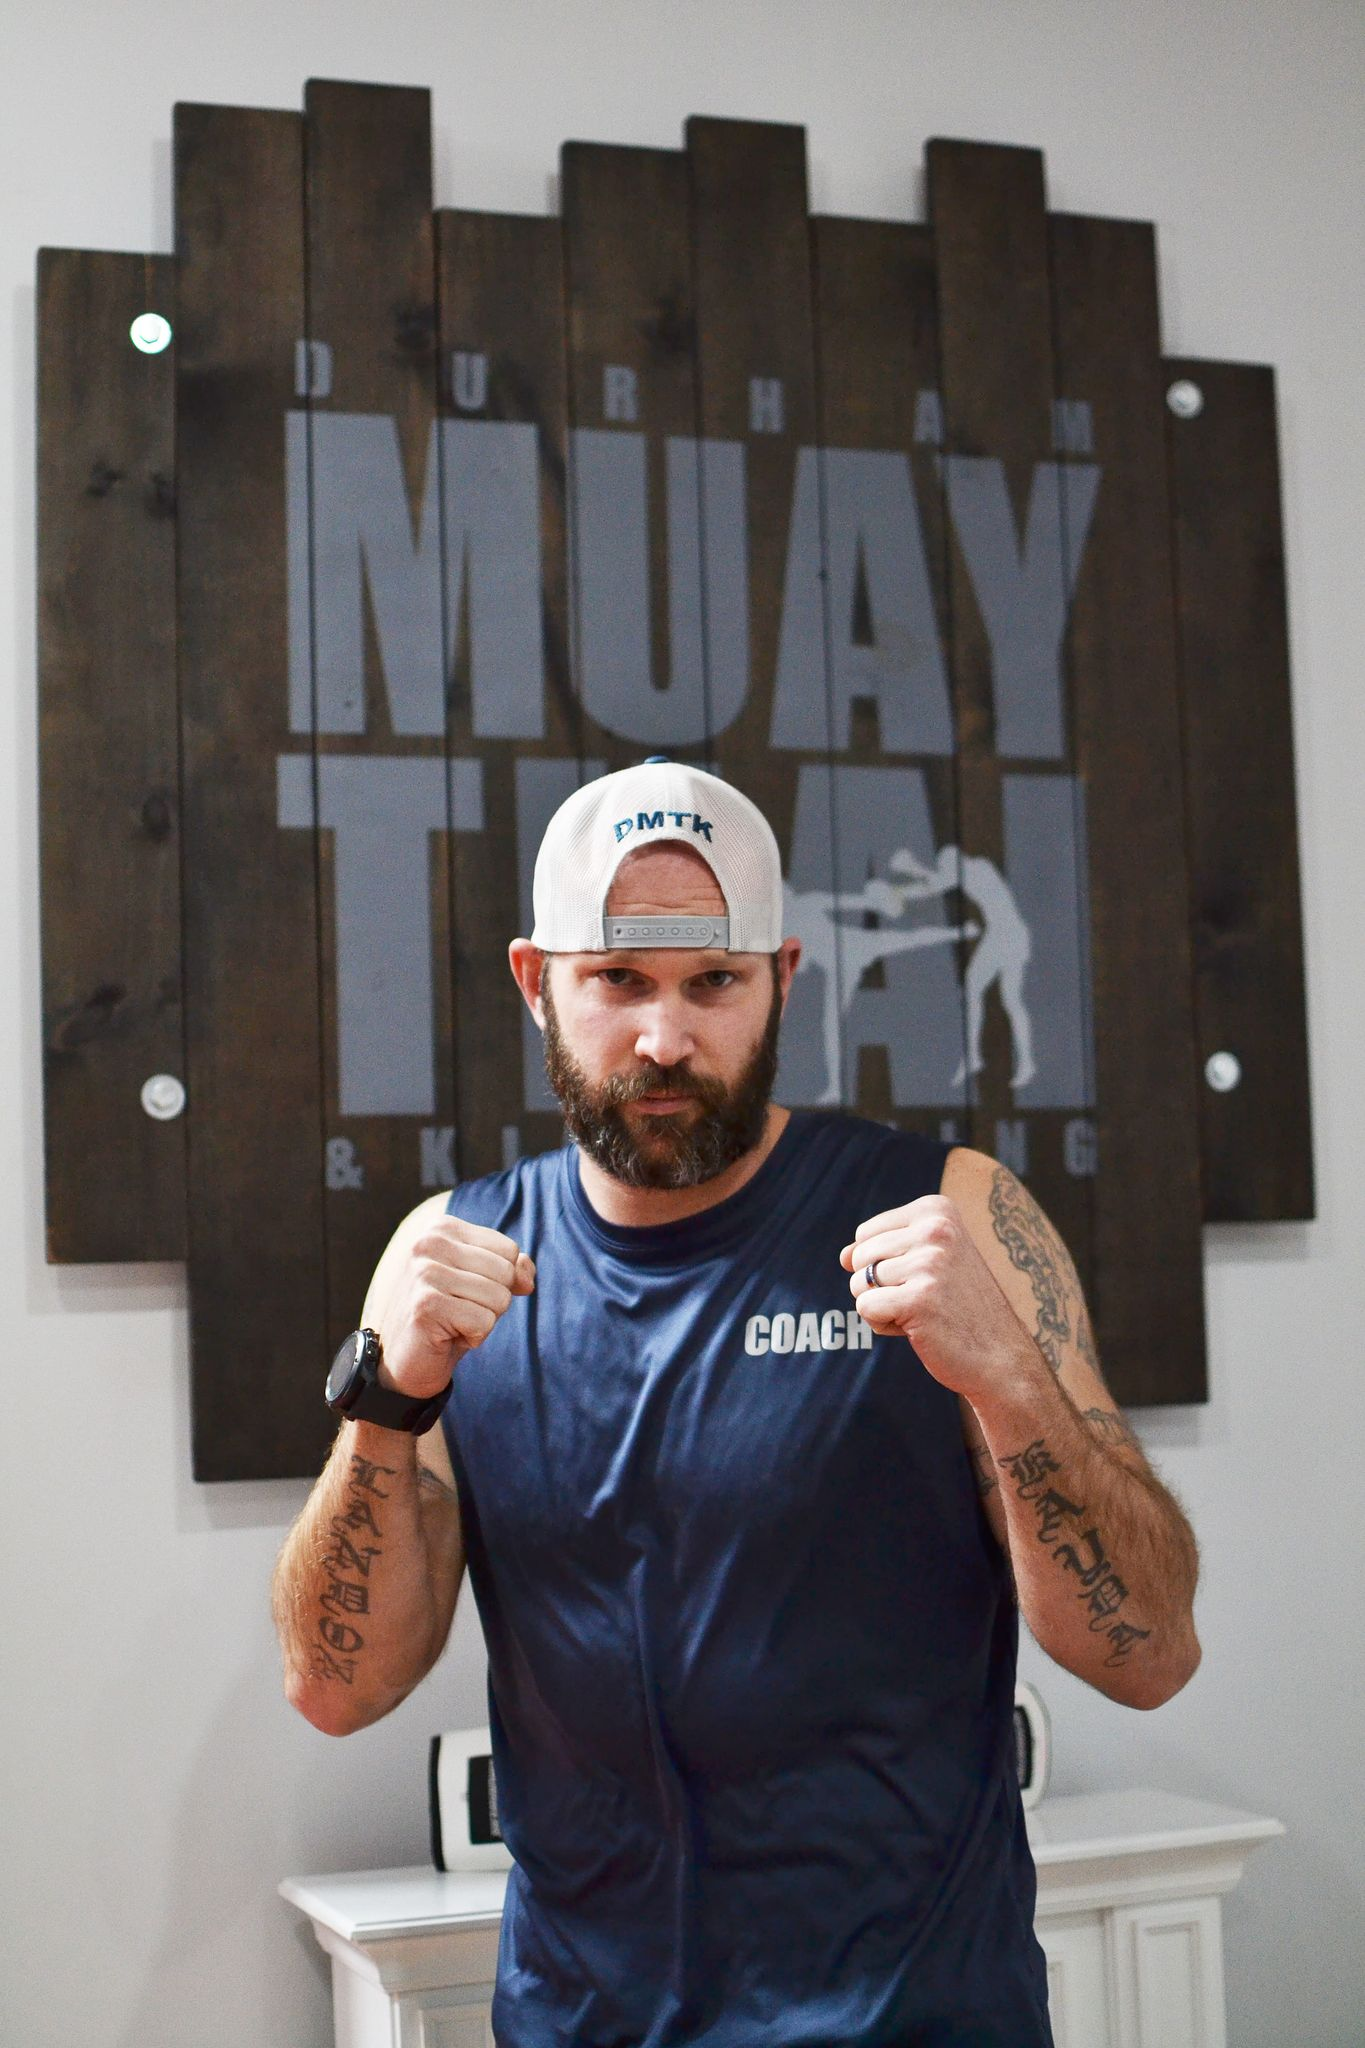 Chris Martin - Durham Muay Thai